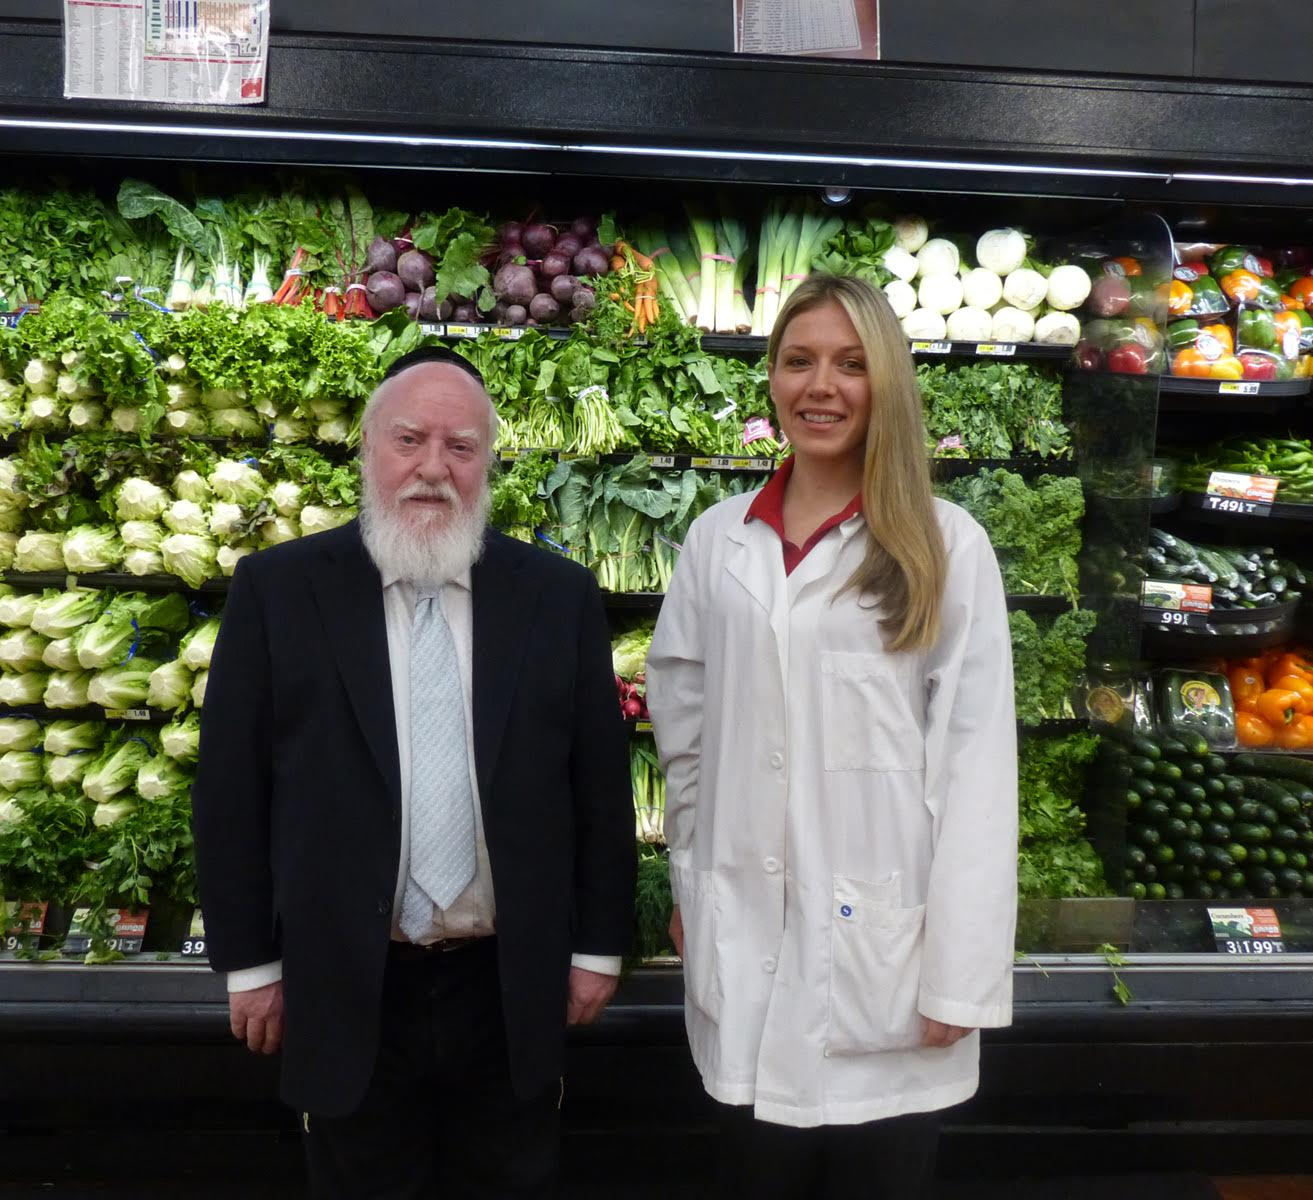 MONSEY MAN CREDITS TALLMAN DIETITIAN WITH IMPROVED HEALTH